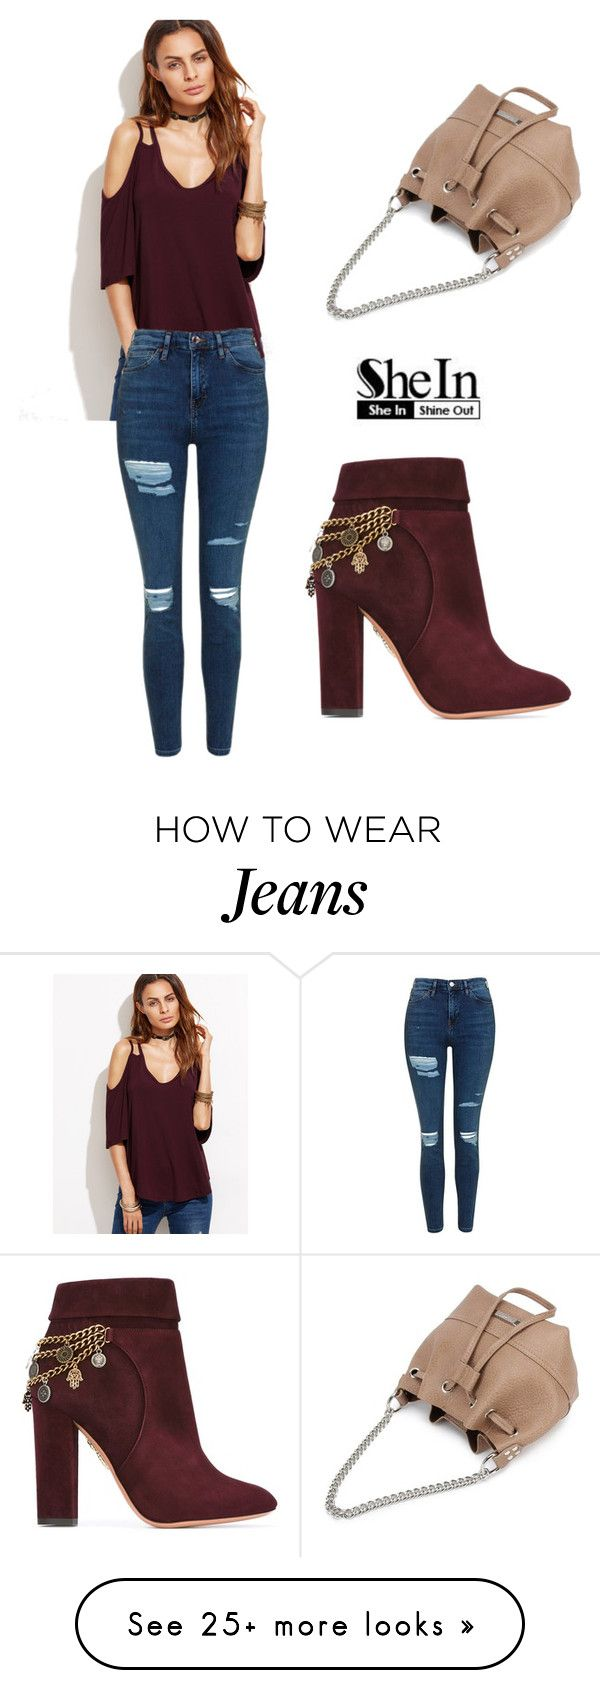 """""""SHEIN T-Shirt"""" by tania-alves on Polyvore featuring Topshop and Aquazzura"""